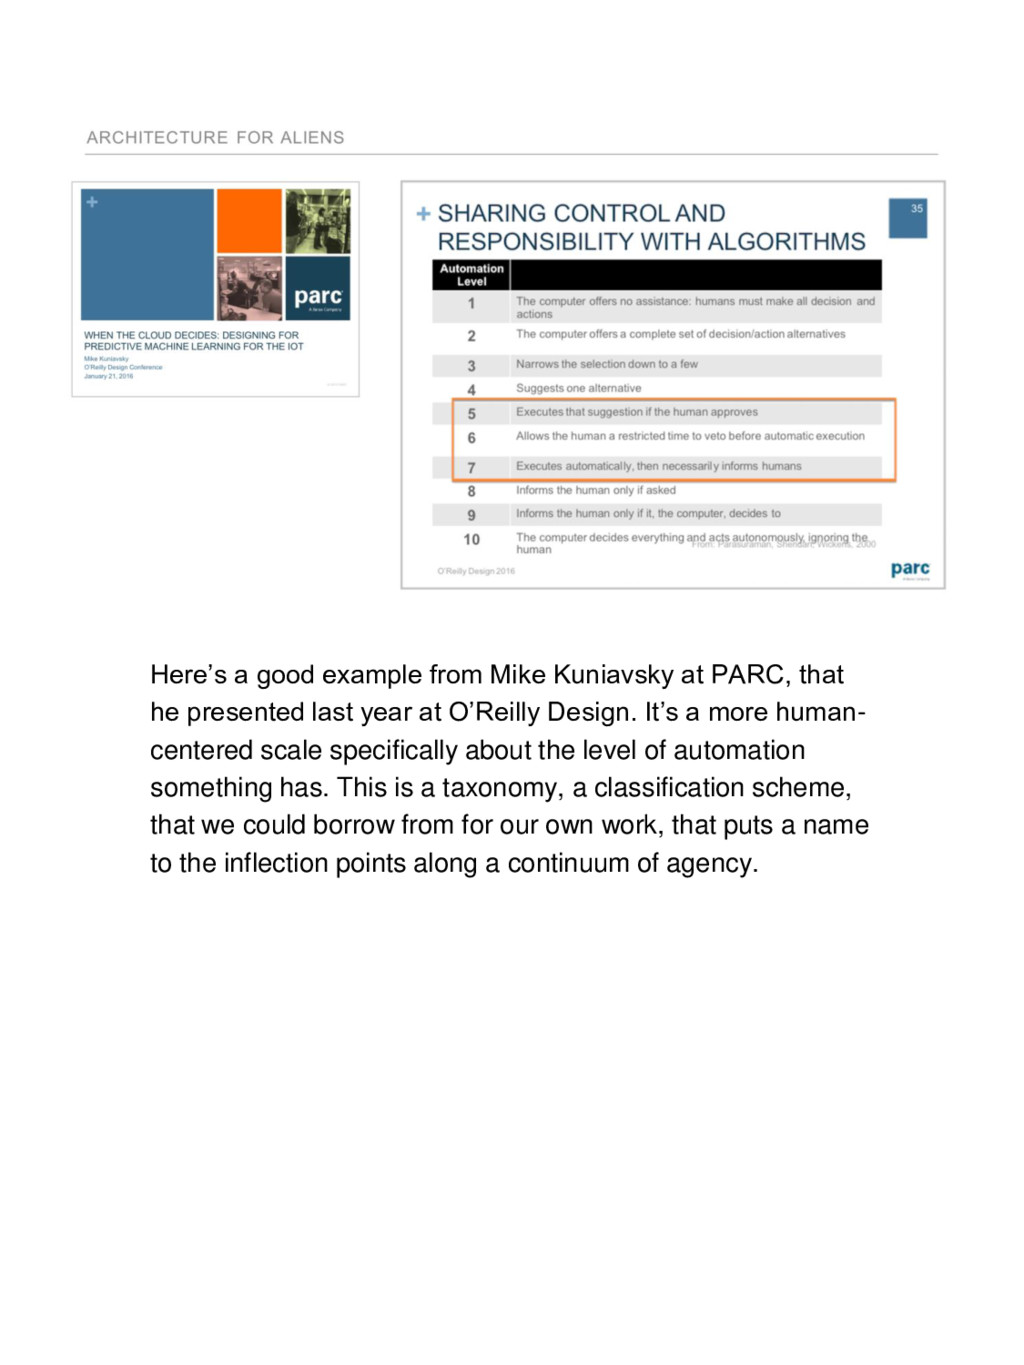 Here's a good example from Mike Kuniavsky at PA...